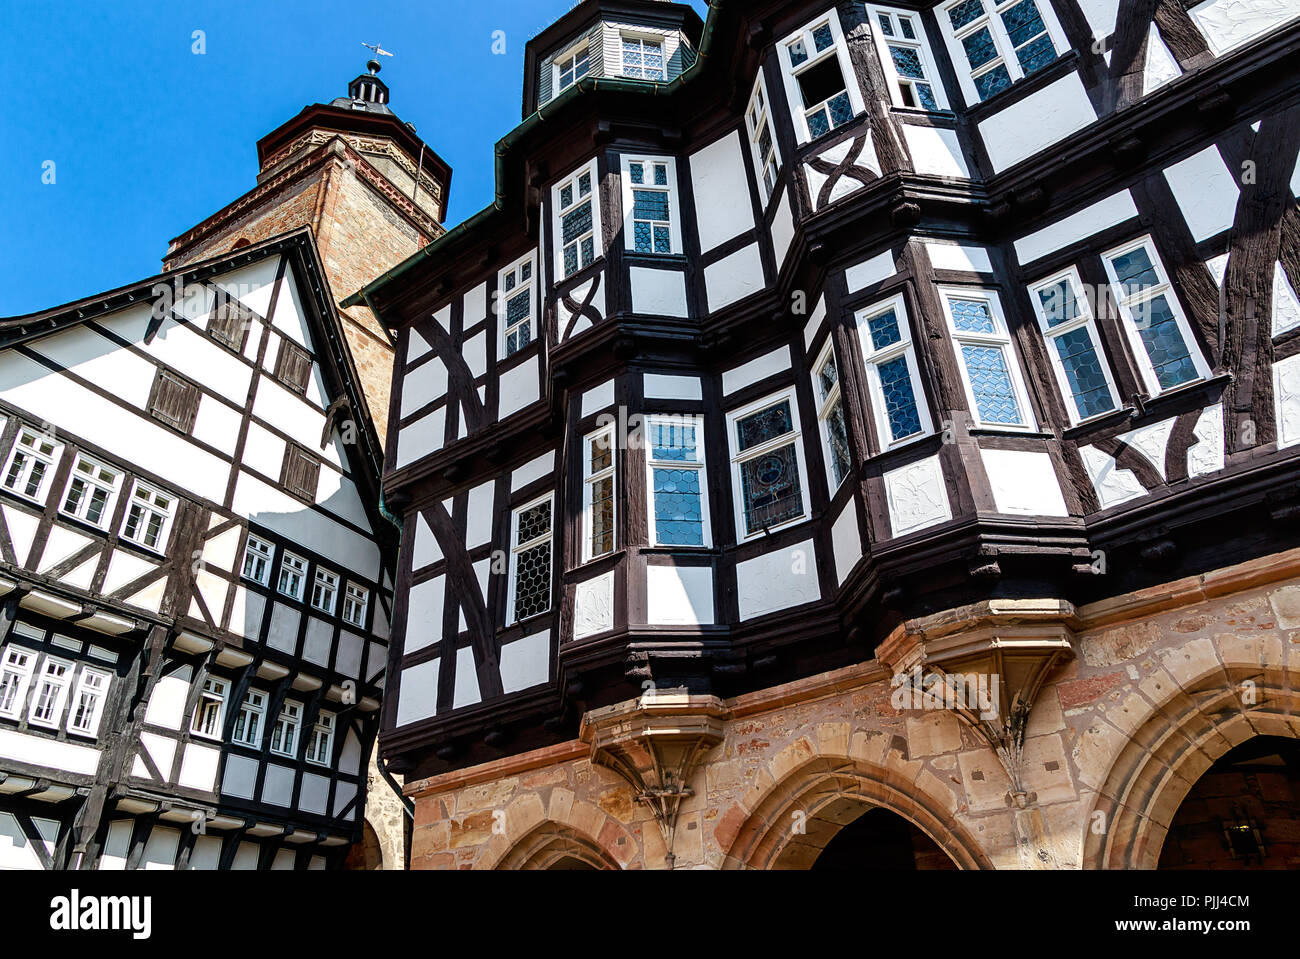 Medieval Town Hall (1512- 1516) in Alsfeld, Germany – This is one of most important German half-timbered town hall buildings. - Stock Image